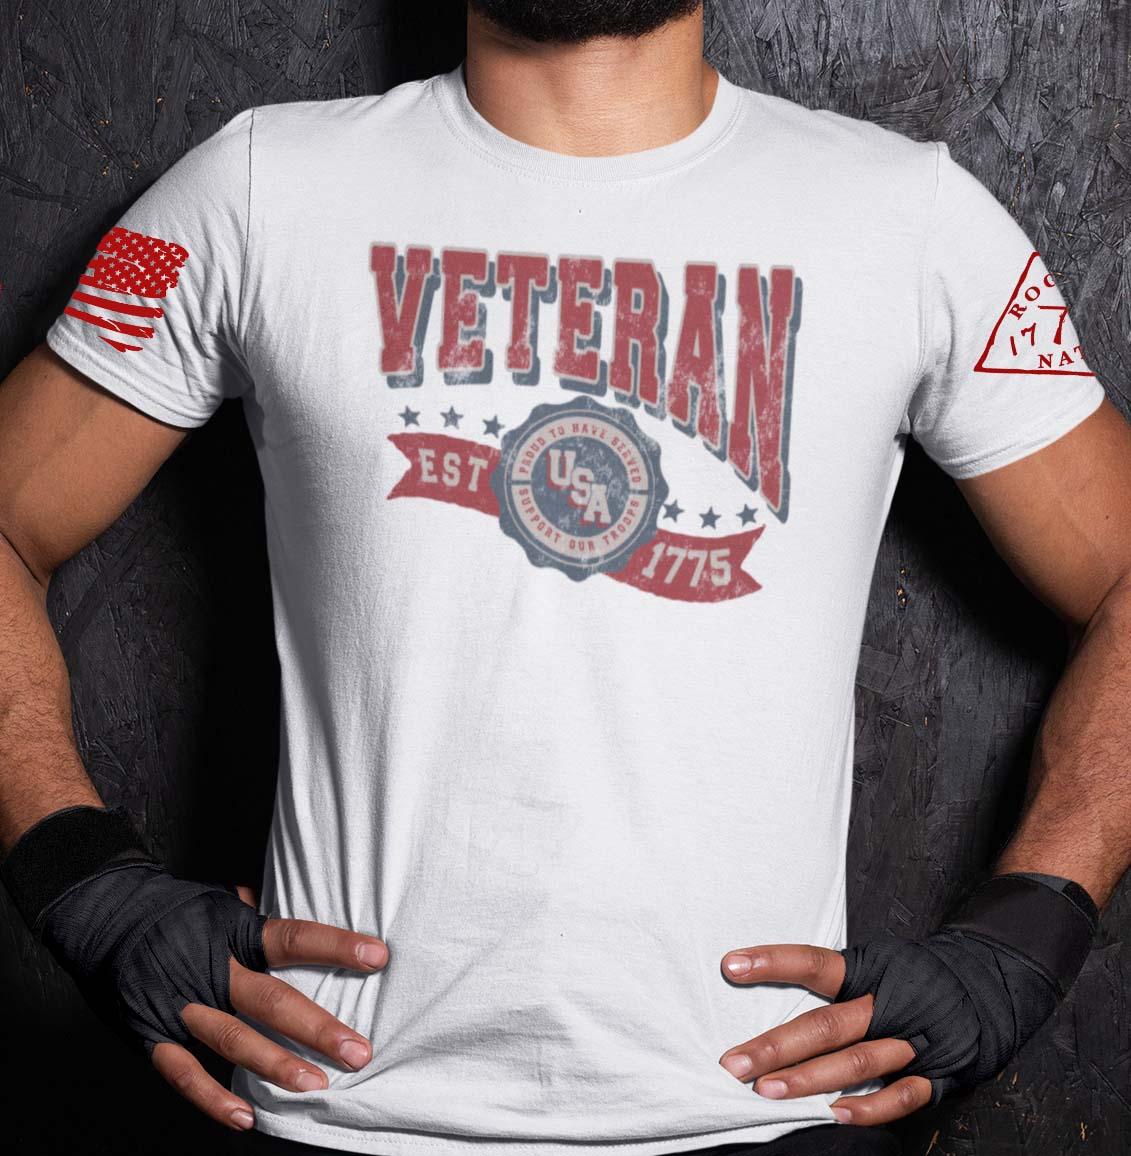 Veteran in the USA on a White T-Shirt Men's